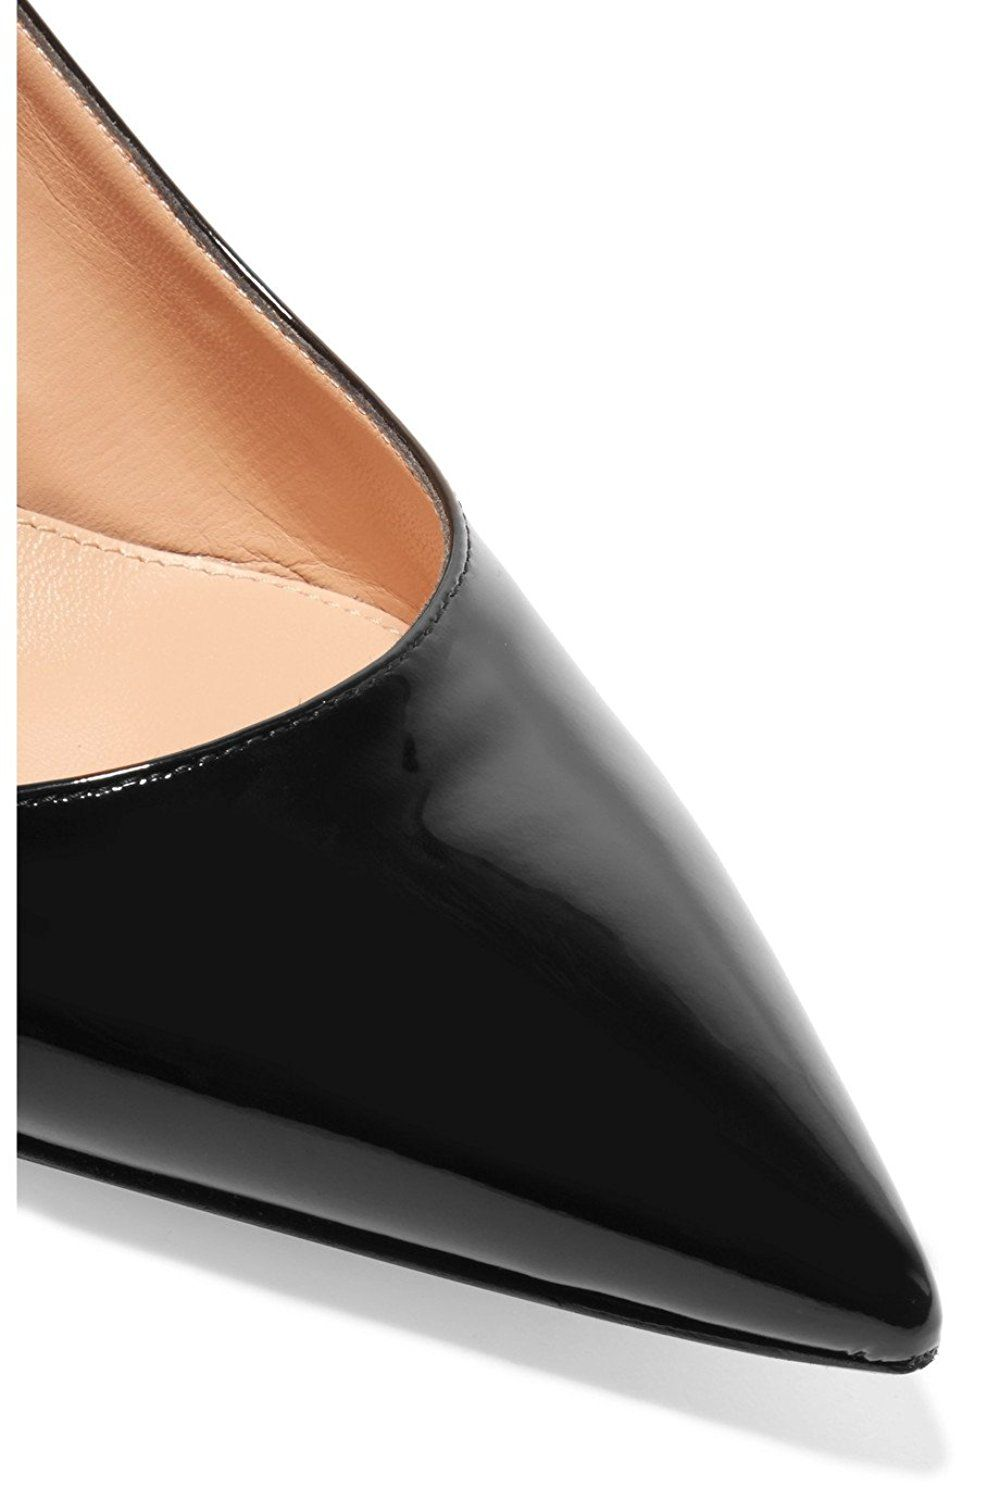 d127c527157 Eldof Women s Patent Leather Pointed Toe Slingback Ankle Strap Kitten Heels  Pumps Evening Stiletto Shoes 6.5cm     To view further for this item